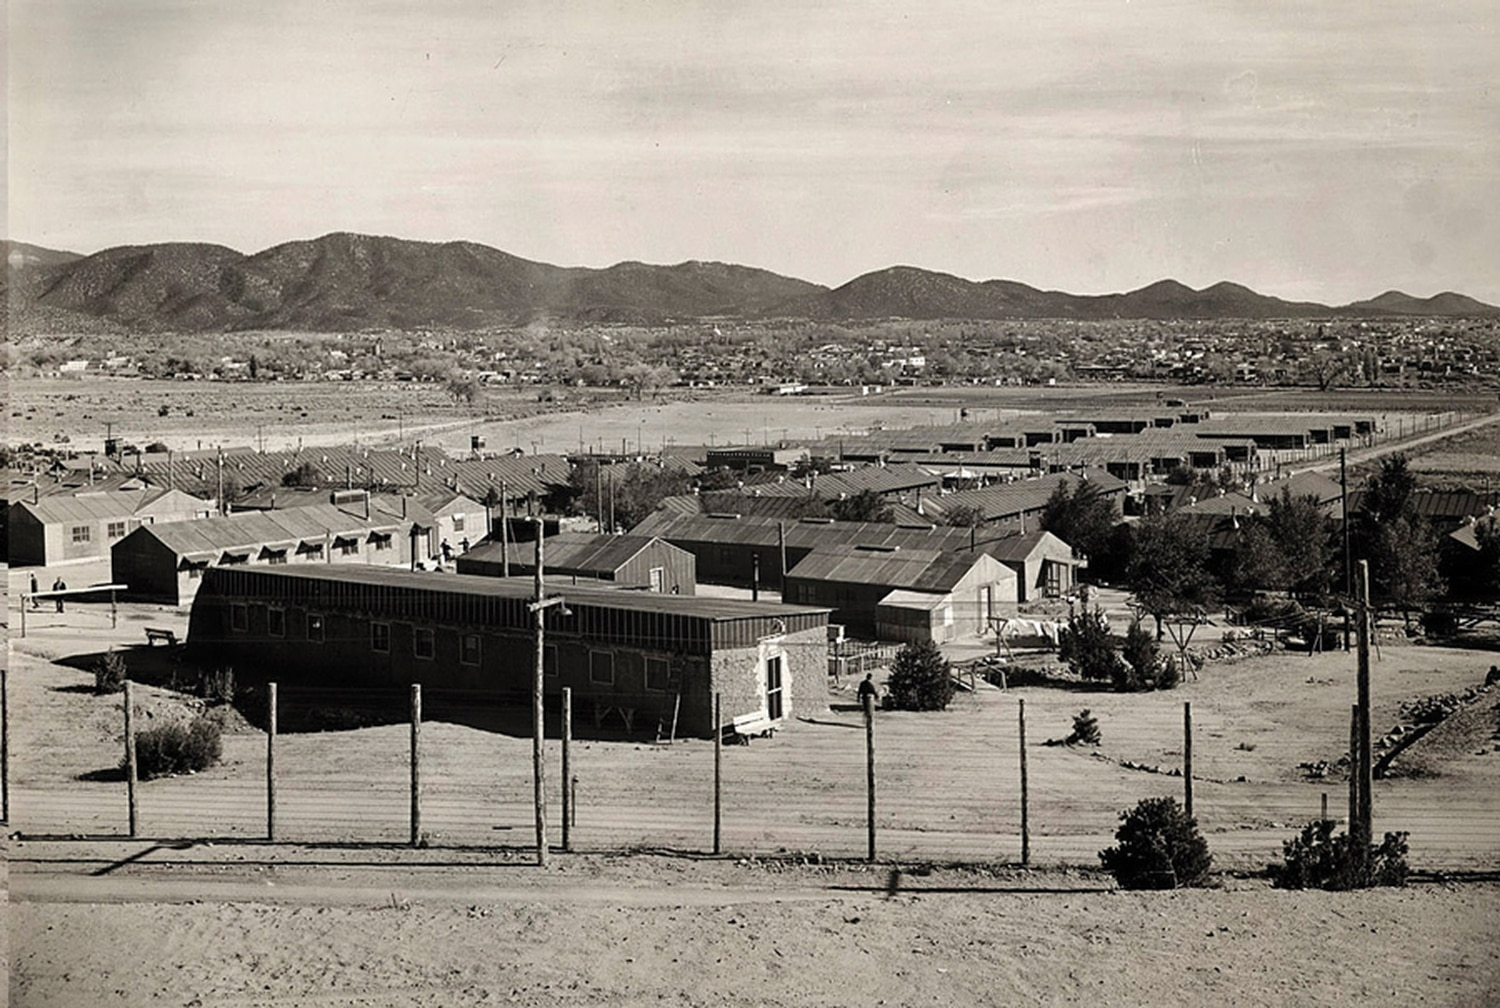 The World War II-era camp was located where the Casa Solana neighborhood sits today.